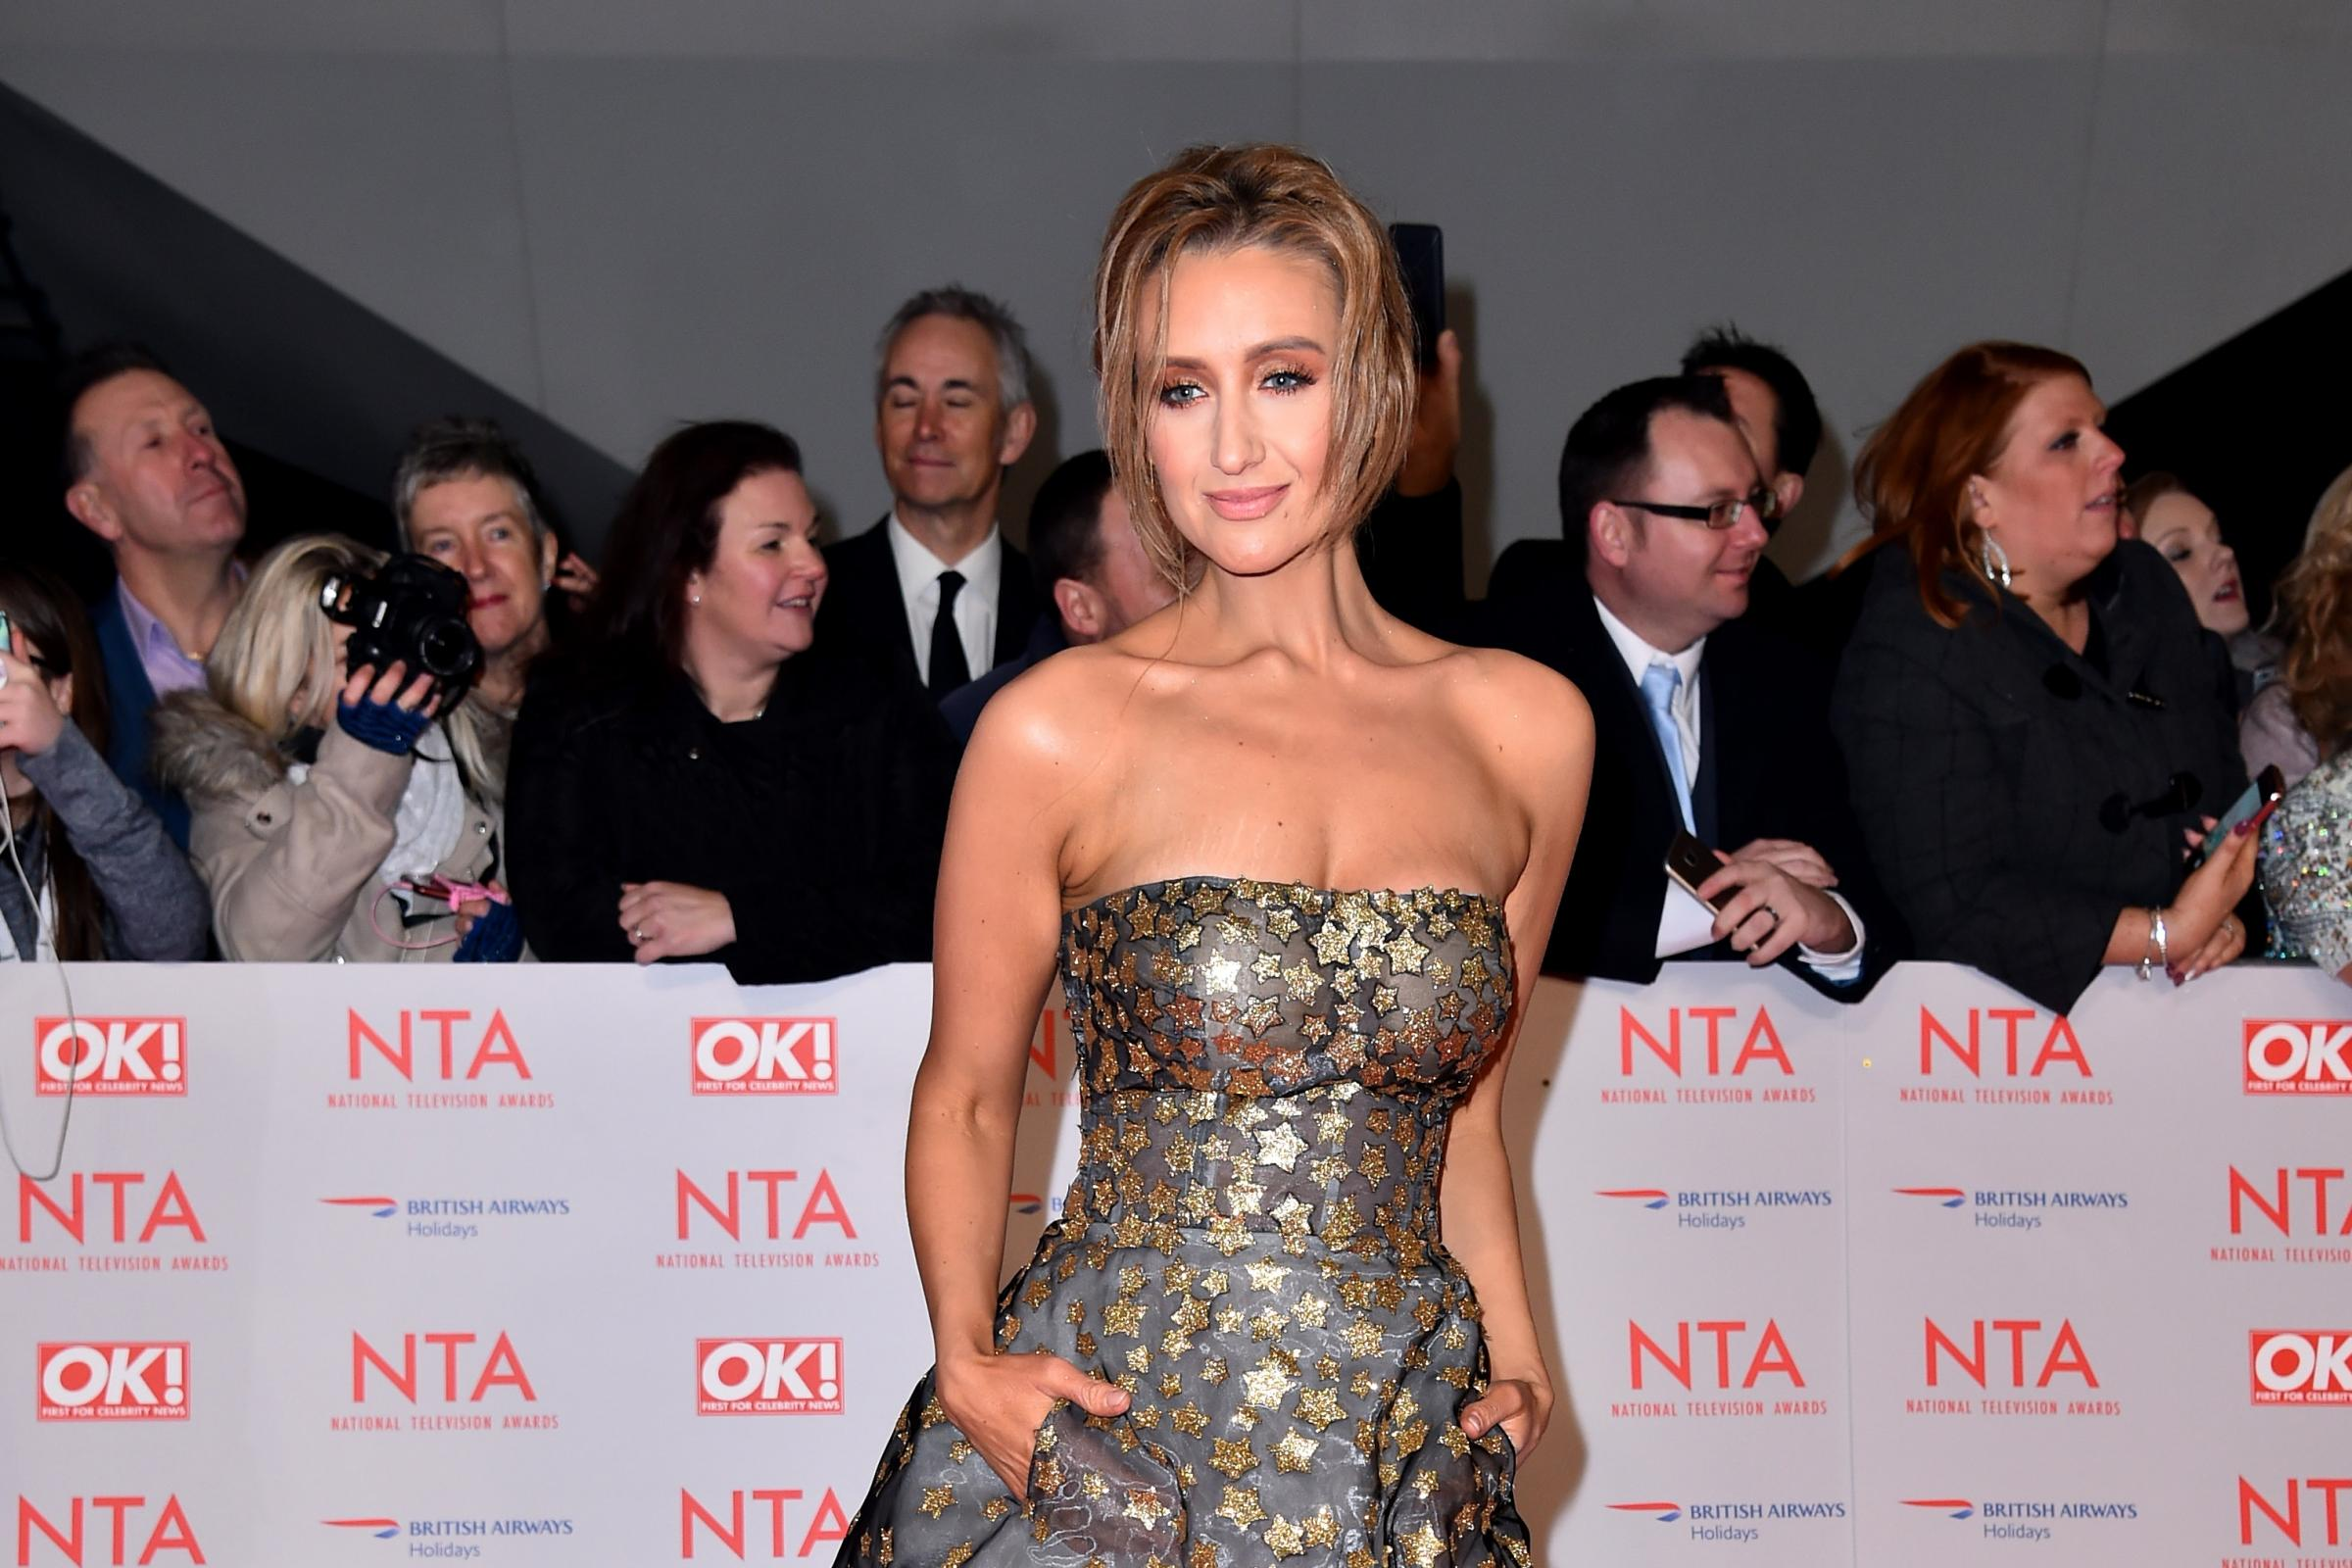 Catherine Tyldesley on the red carpet